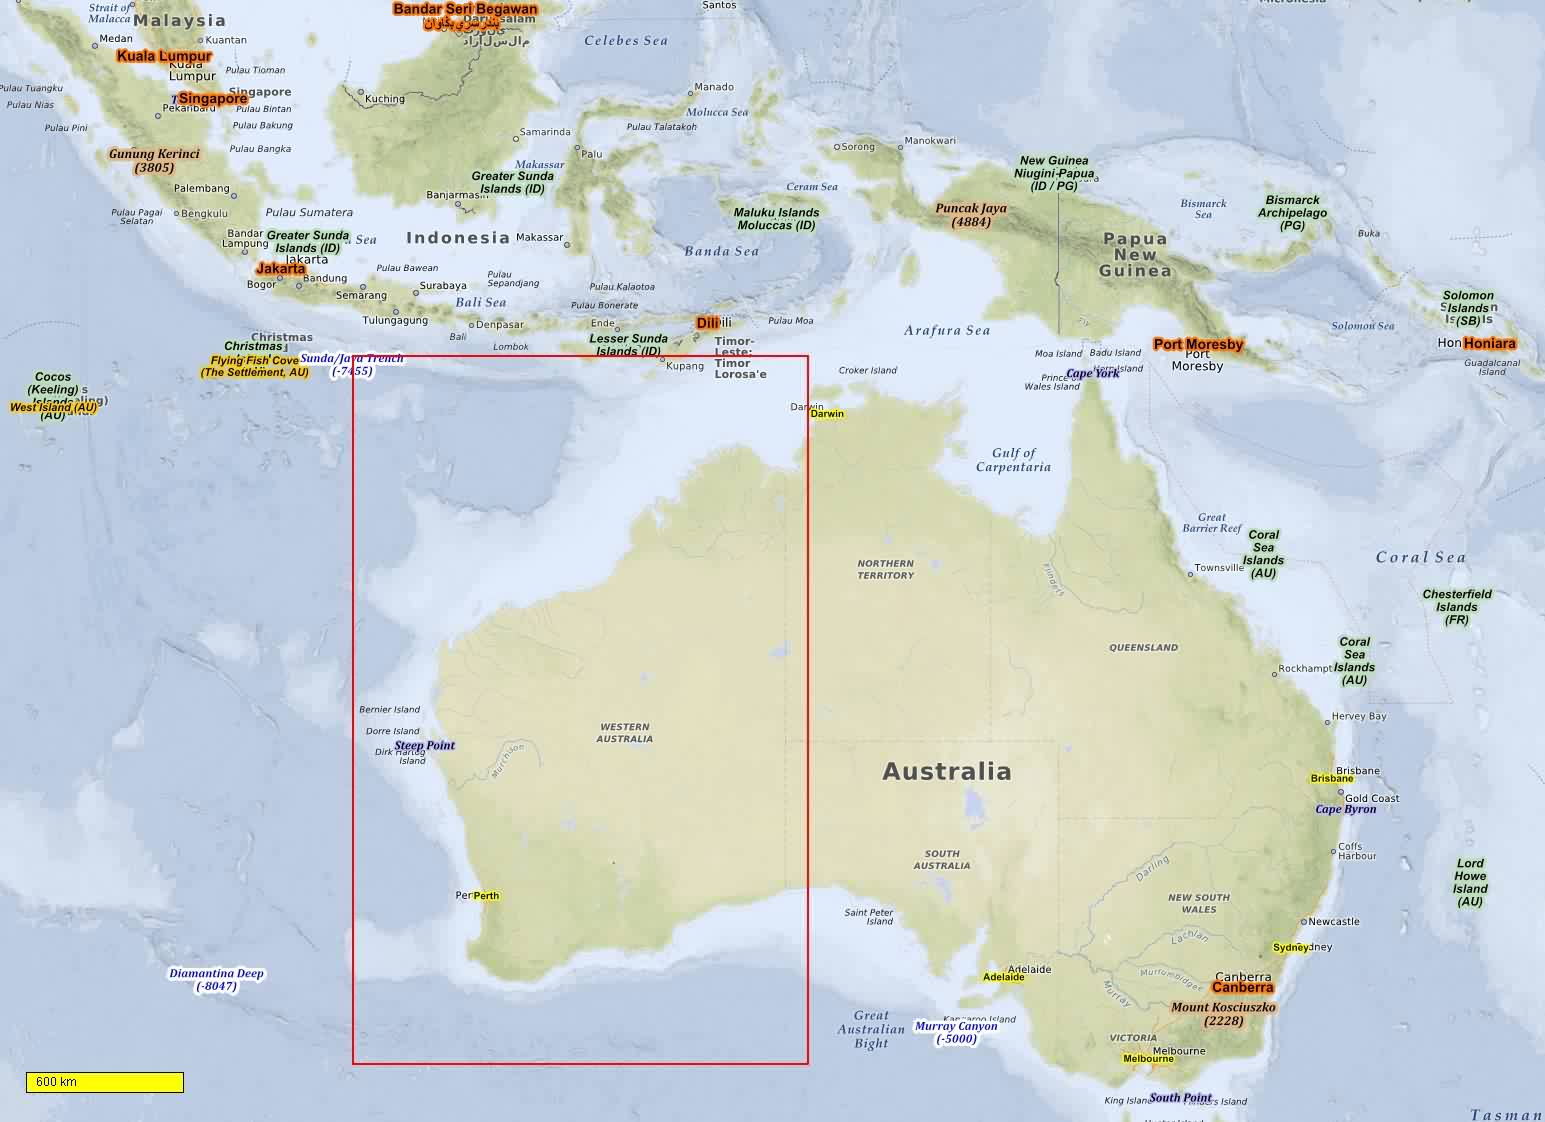 Australia new zealand oceania cycle and hiking maps download for coverage sciox Gallery